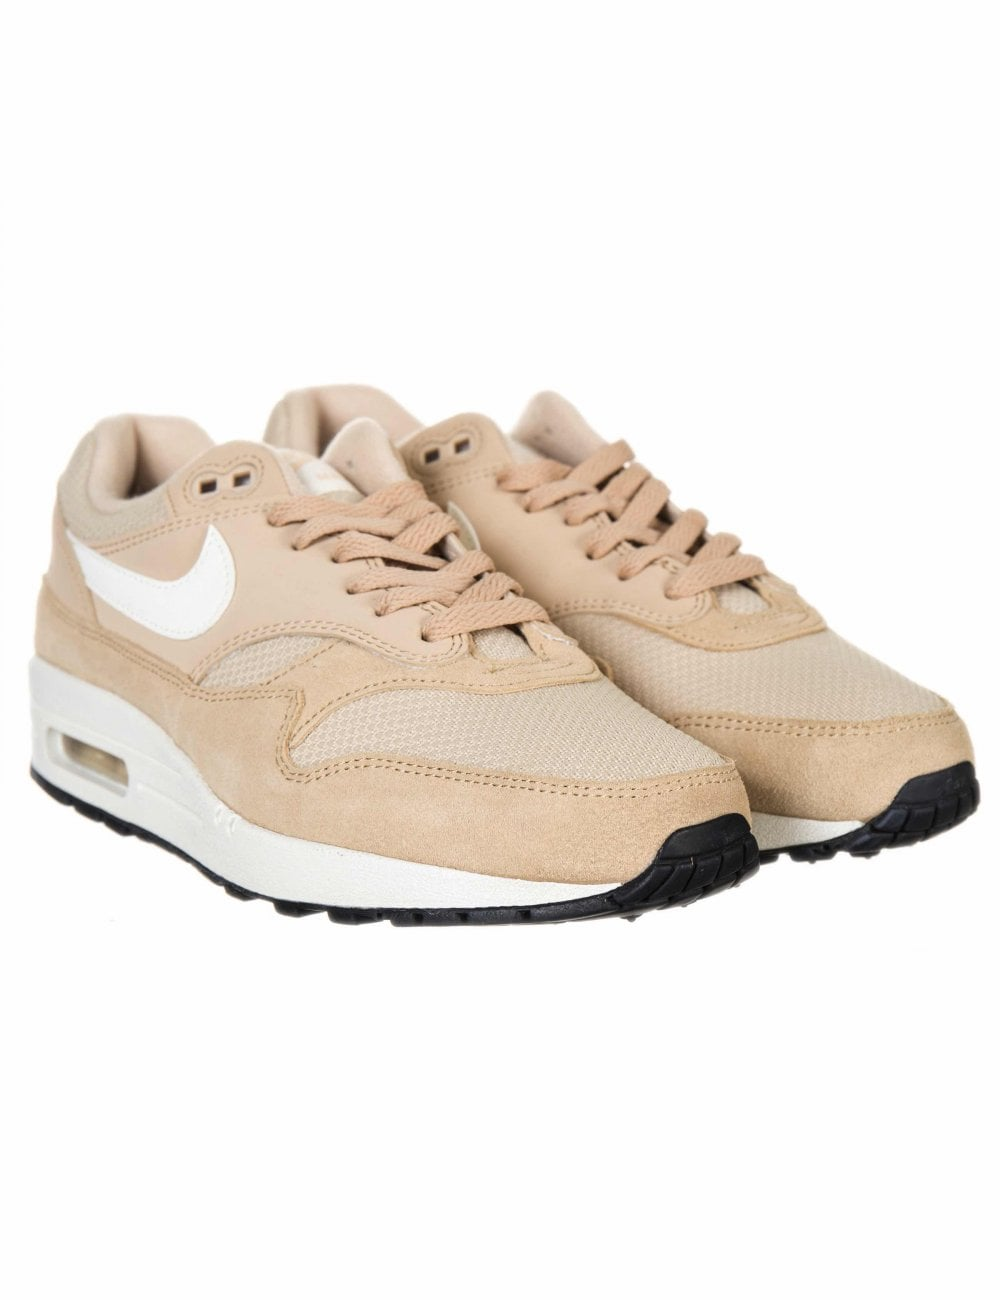 Nike Air Max 1 Trainers | ASOS